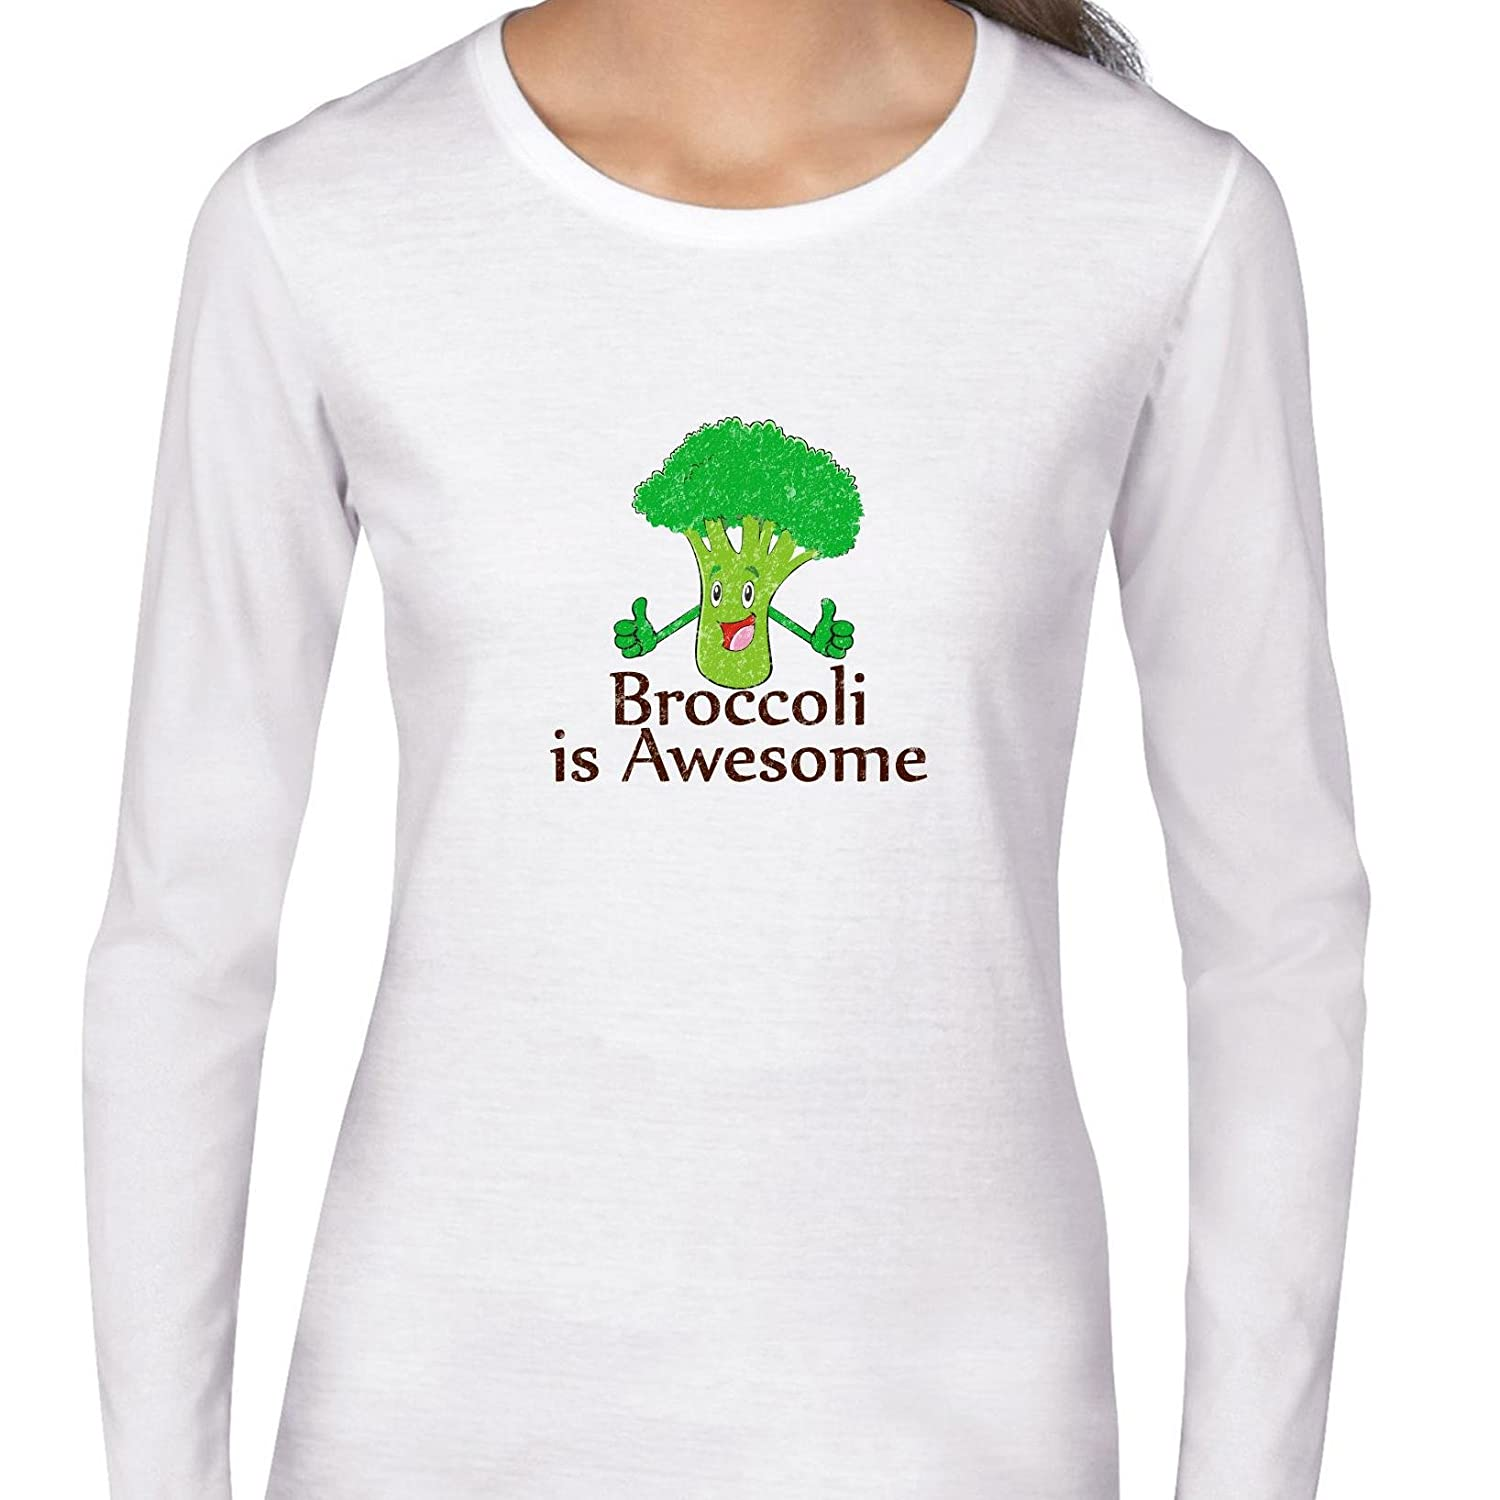 cb037db6 Amazon.com: Hollywood Thread Broccoli Is Awesome! - Thumbs Up Smiling  Vegetable Women's Long Sleeve T-Shirt: Clothing